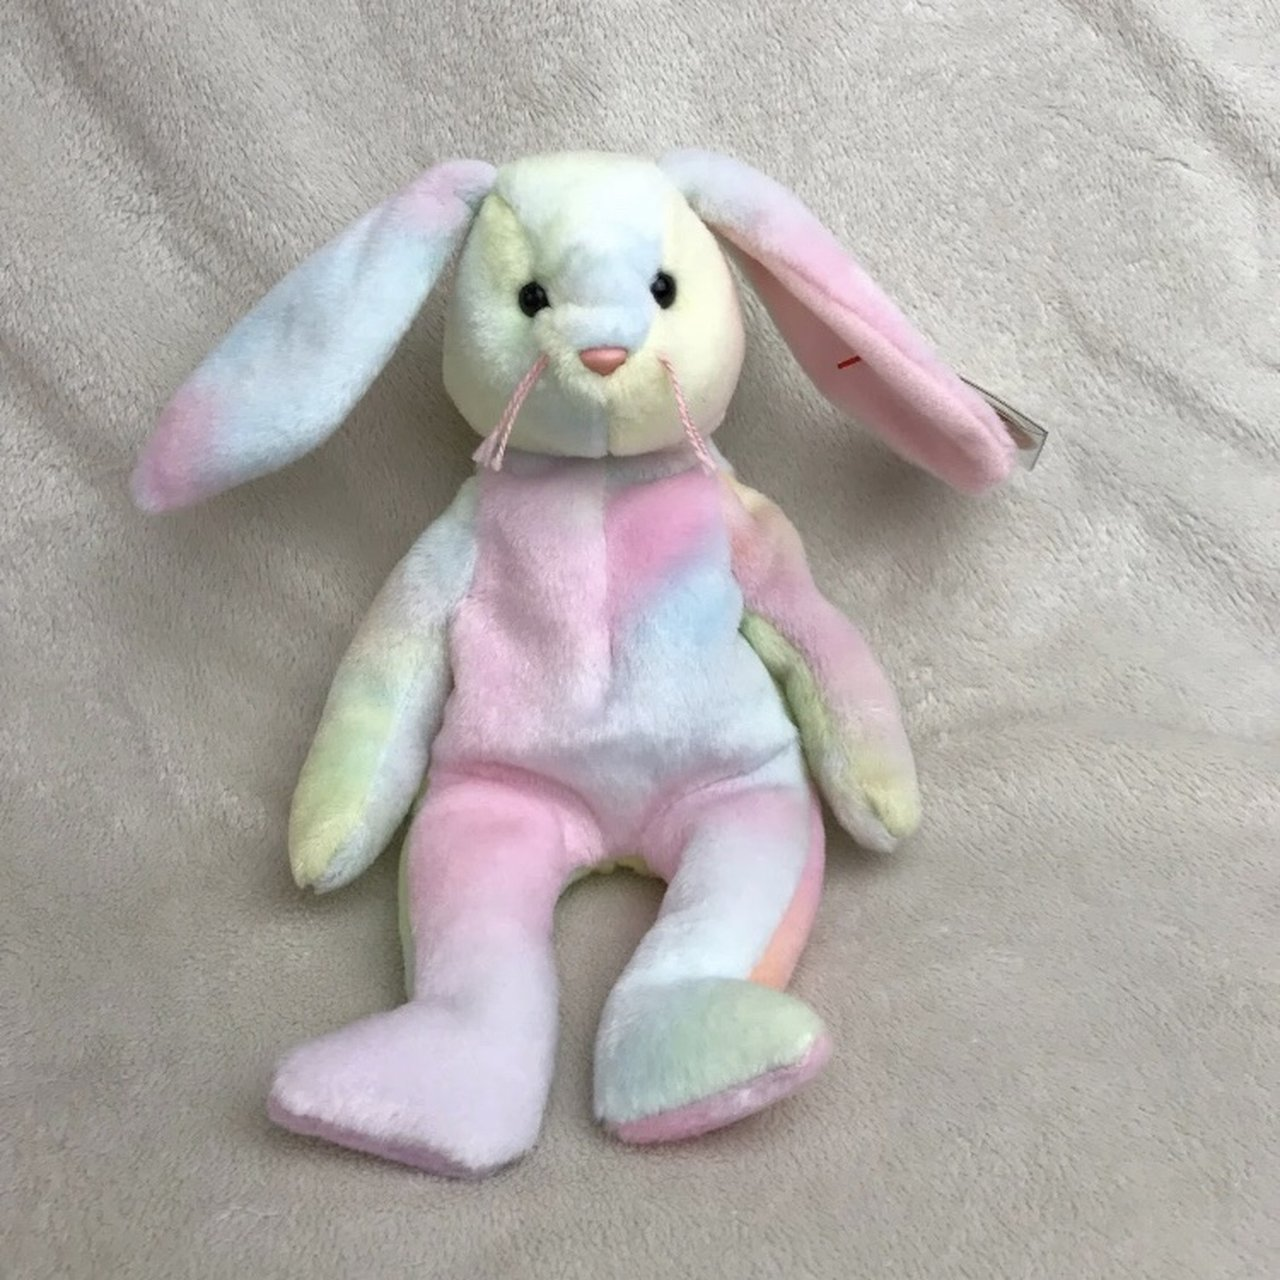 0595c7dfcf1 Adorable Ty Beanie Babies tie dyed Easter bunny Hippie. Has - Depop